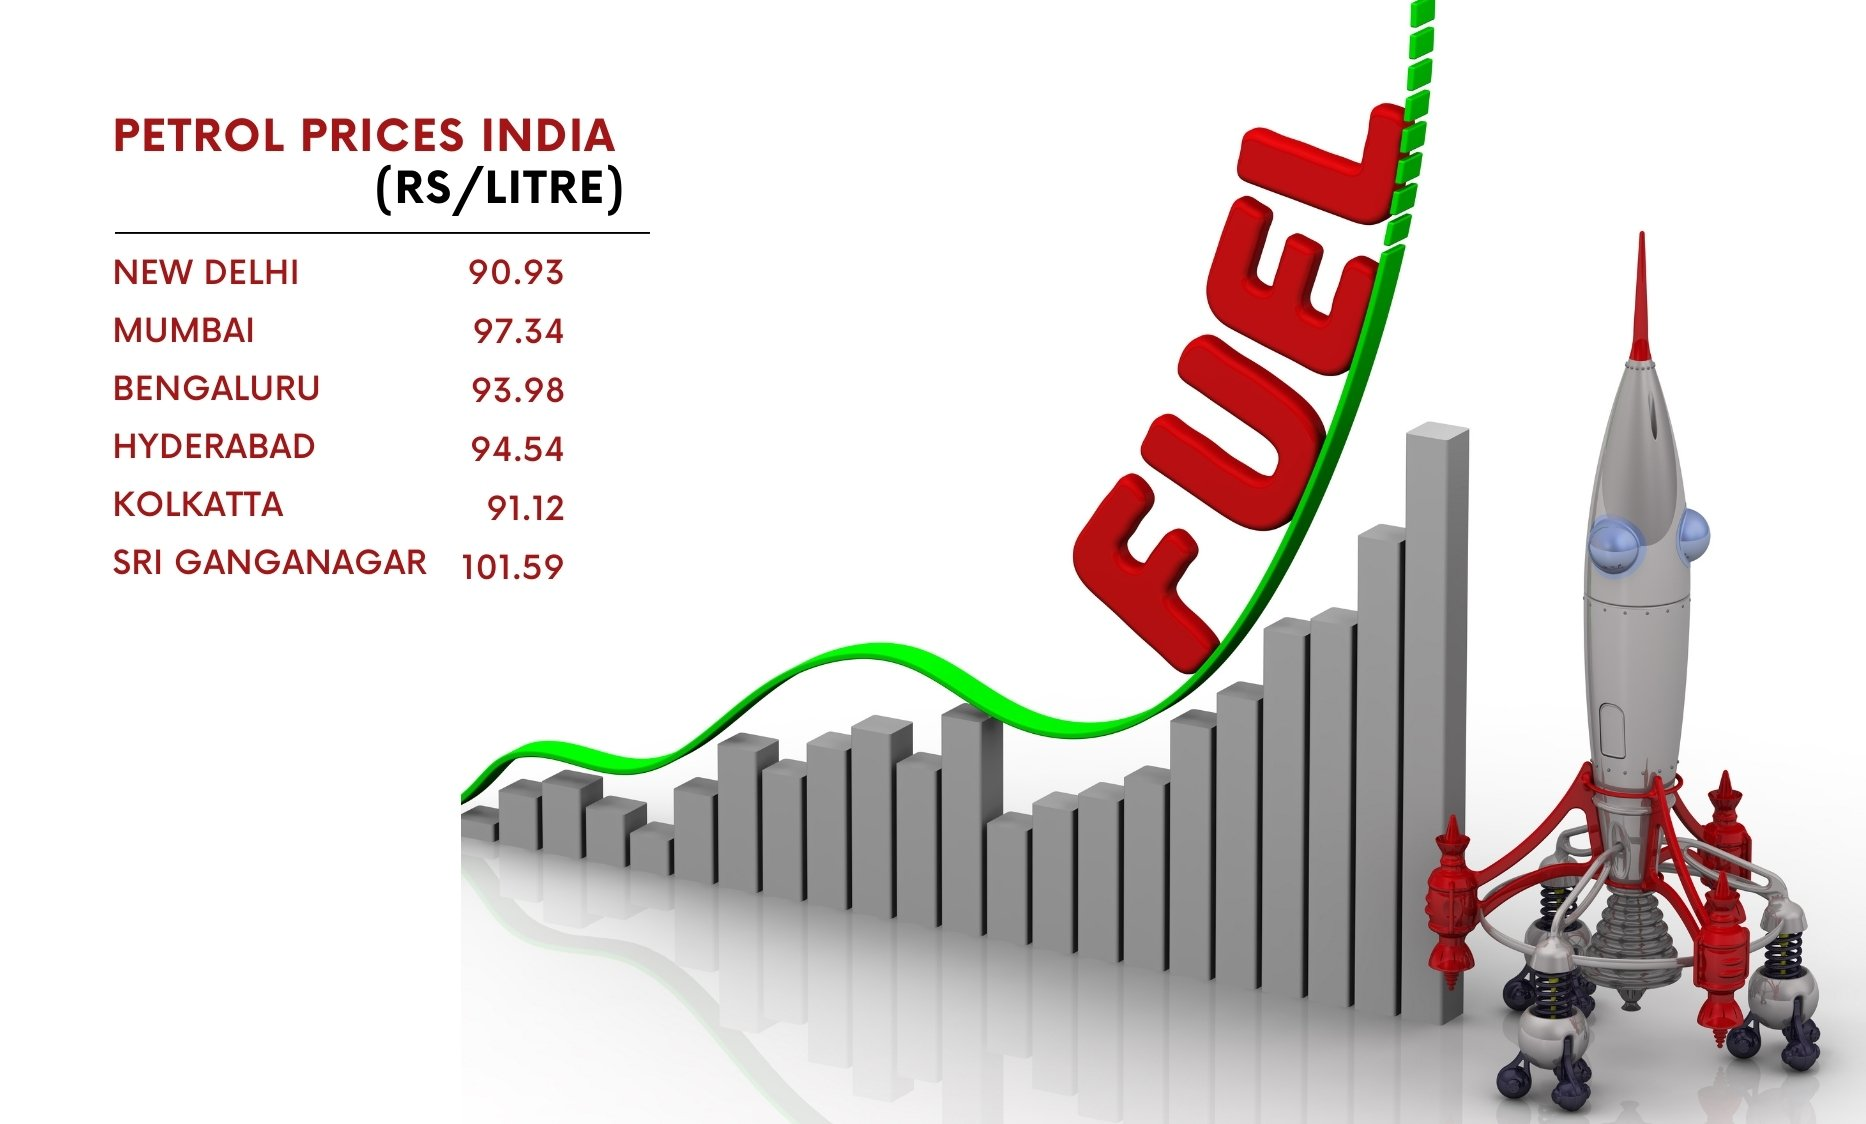 Fuel Prices Shoot Through the Roof Despite Finance Minister's Assurance During Budget 2021 - Digpu News